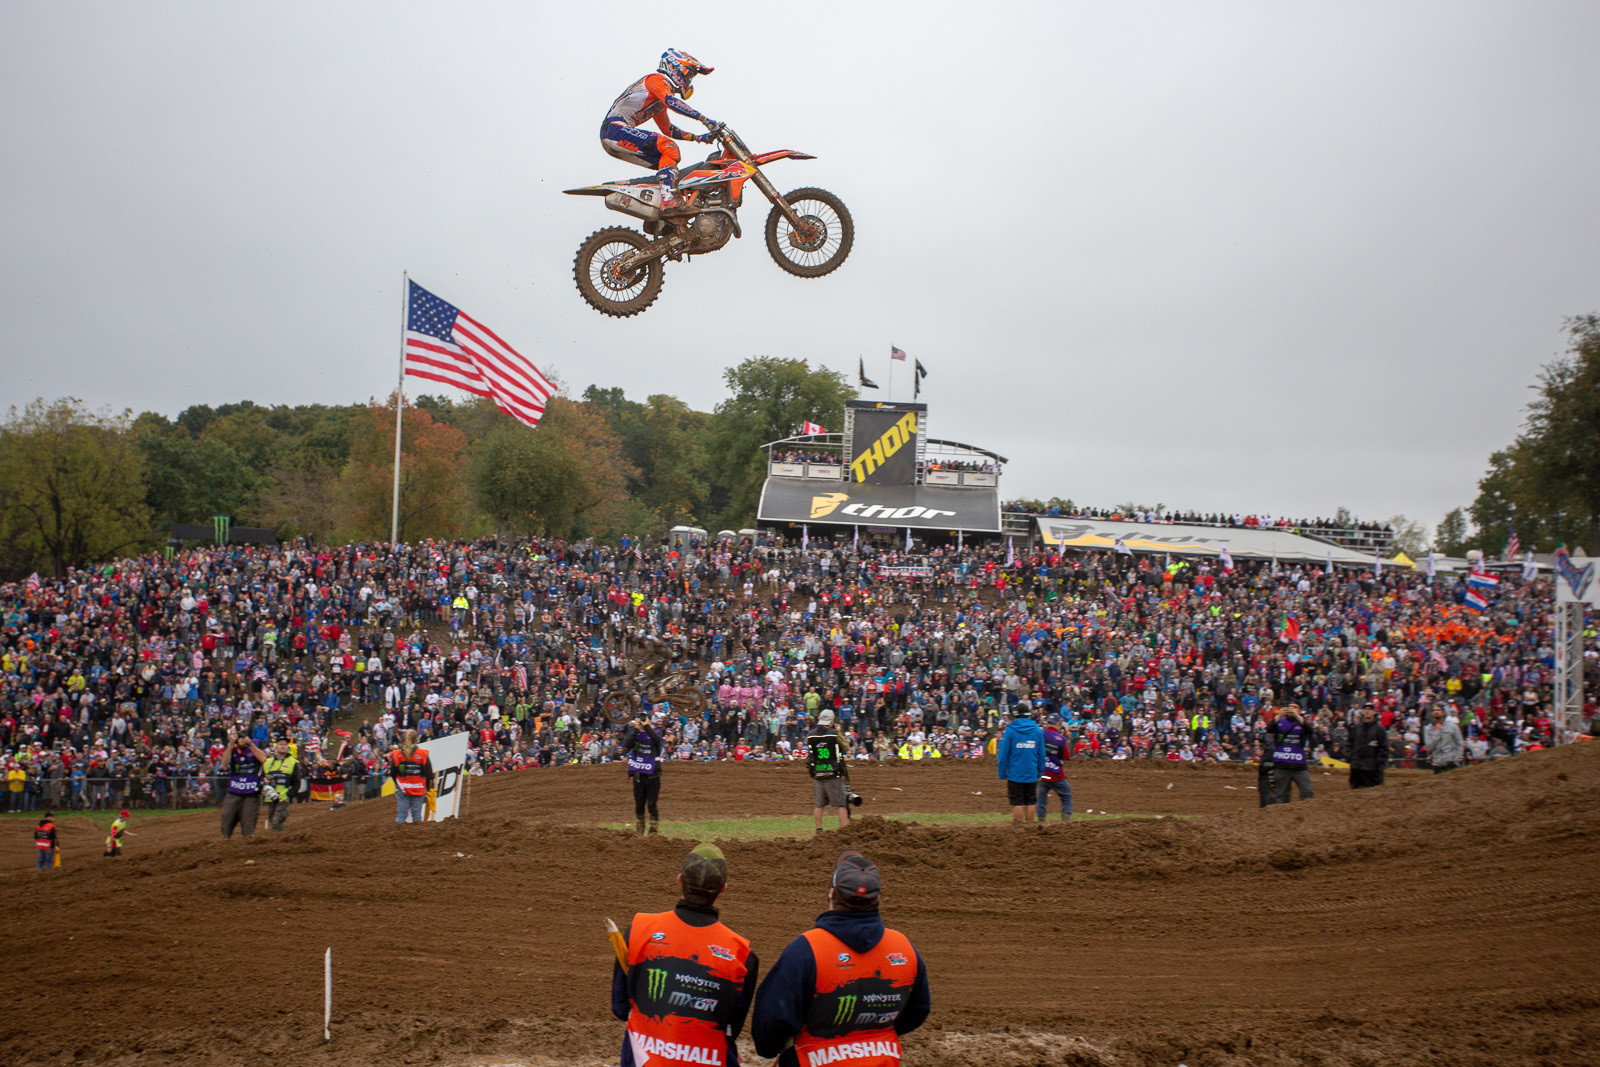 Glenn Coldenhoff was one of a small handful of riders (including Paulin, Tomac, and Cairoli) that cleared LaRocco's Leap.